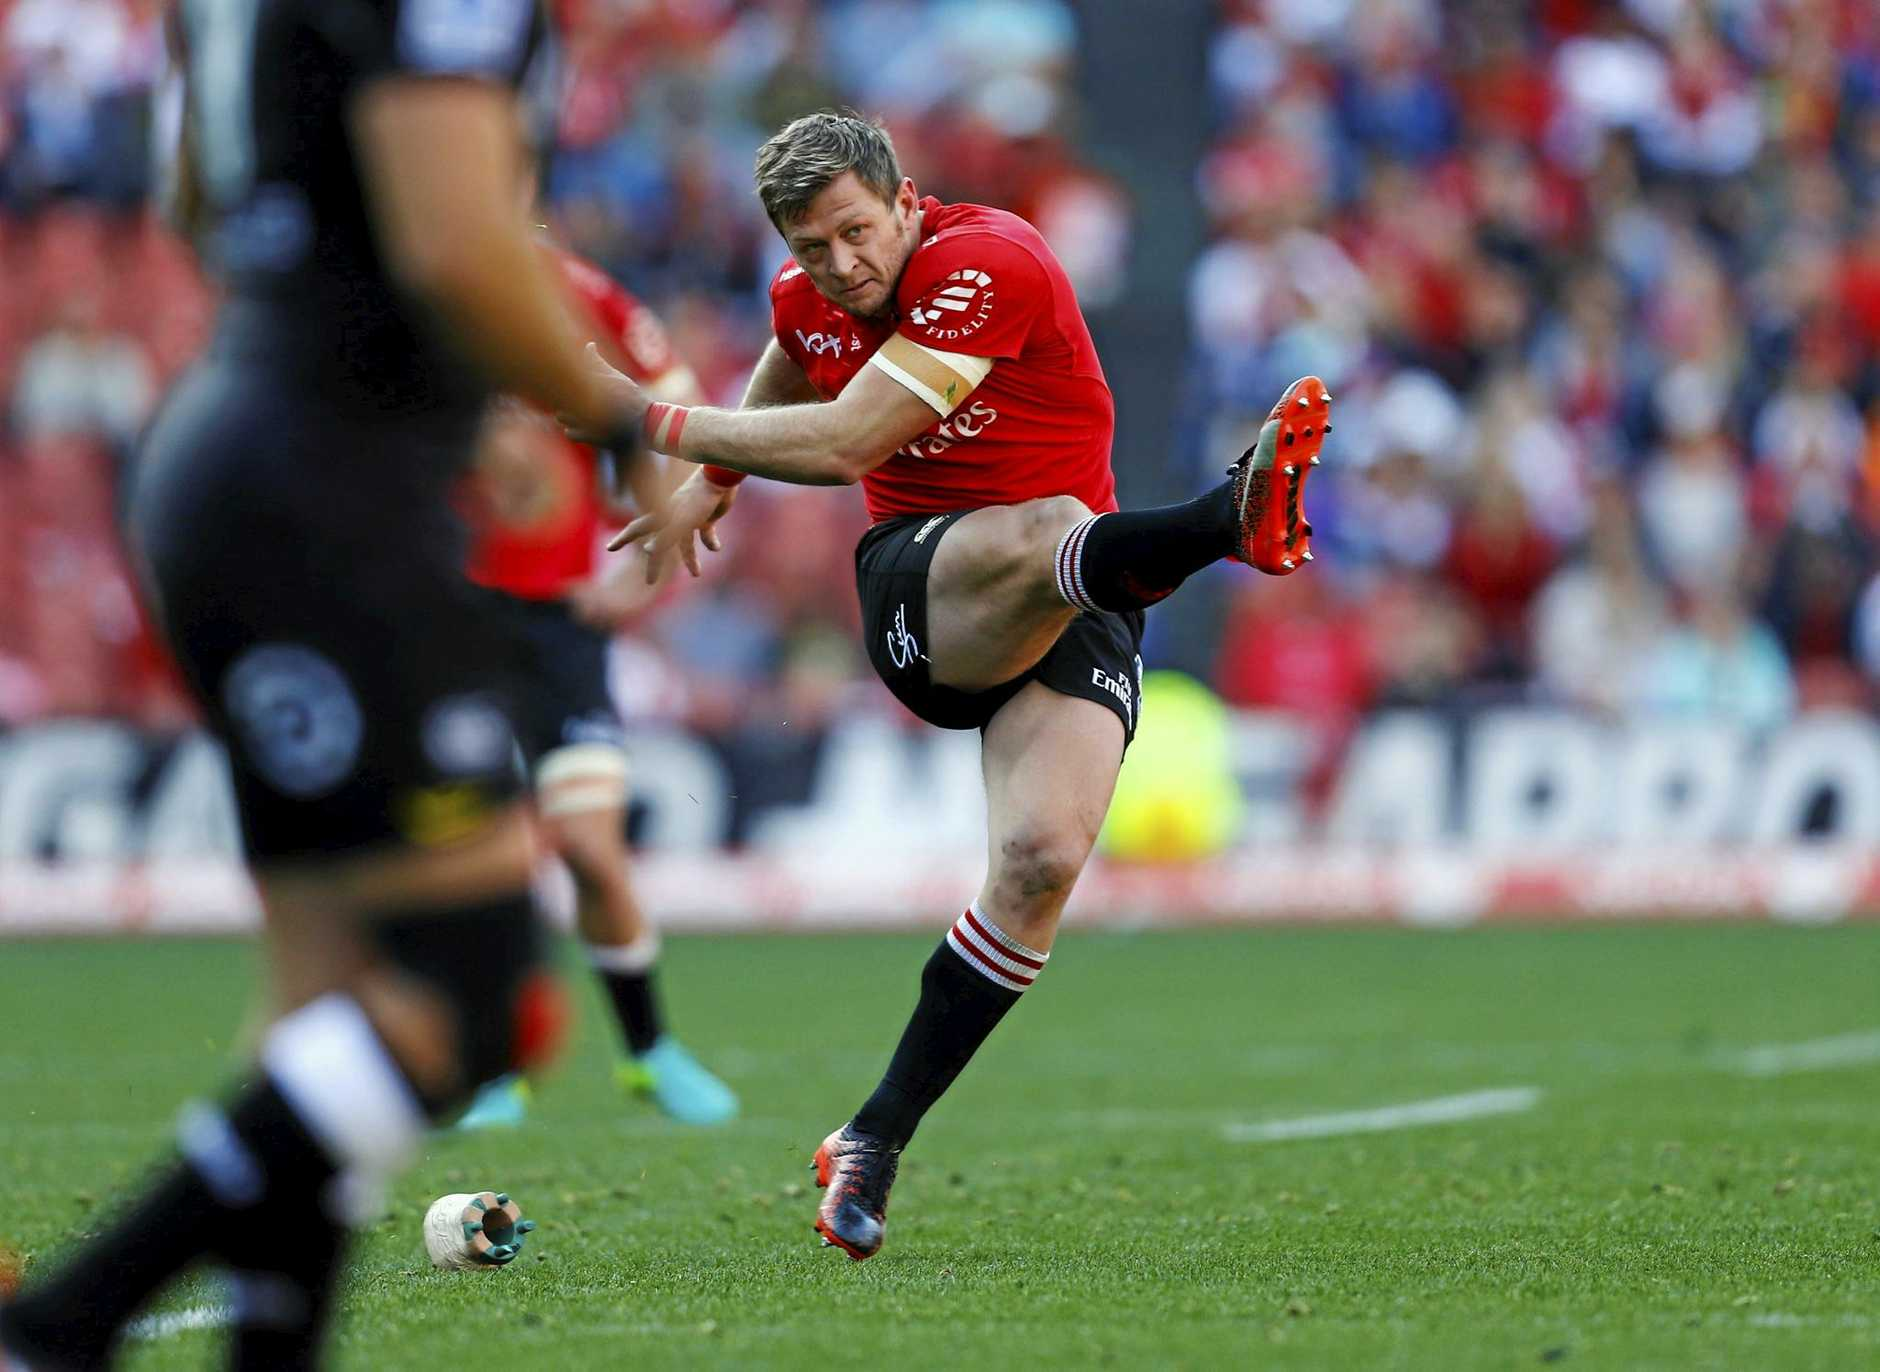 Lions' Ruan Combrinck kicks the winning penalty in the Super Rugby quarter-final match against the Sharks.